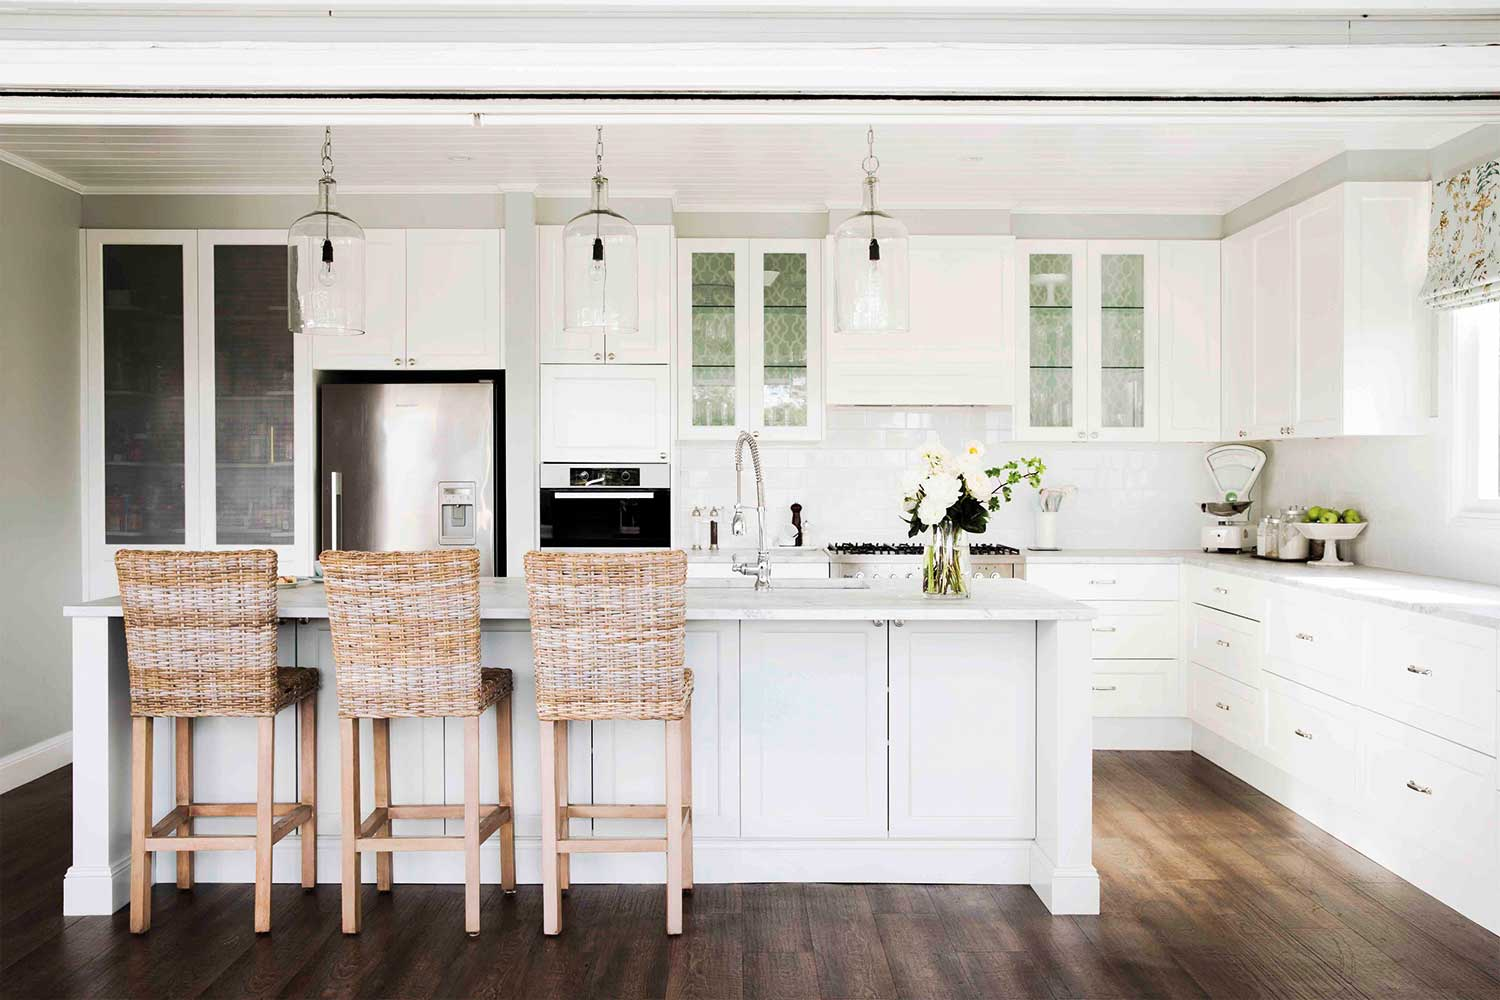 Hampton Home Design Ideas: How To Decorate With Hamptons Style In Your Home